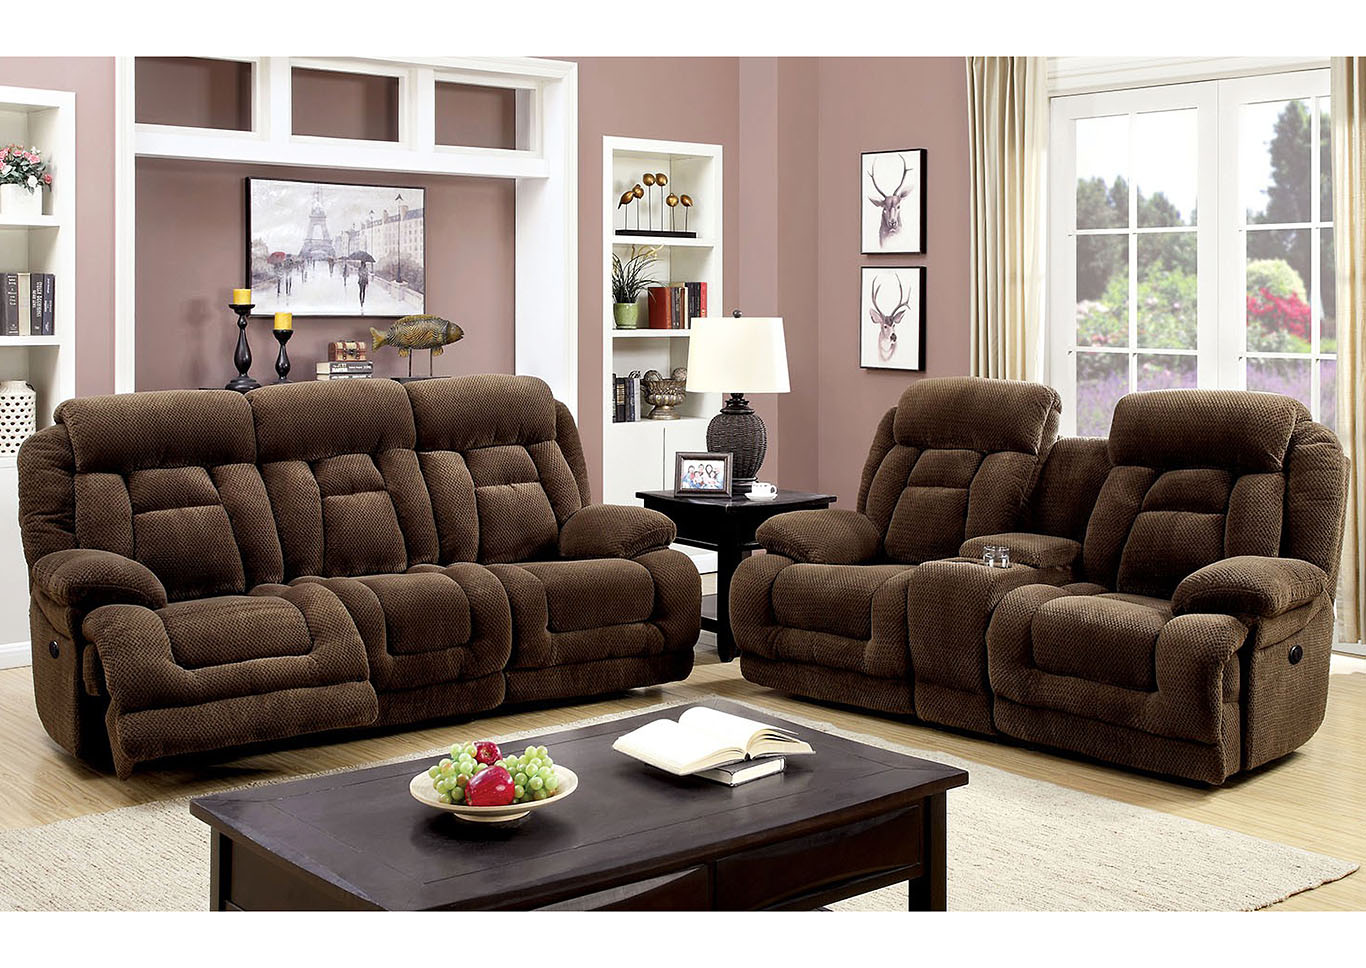 Grenville Brown Power-Assist Reclining Sofa,Furniture of America